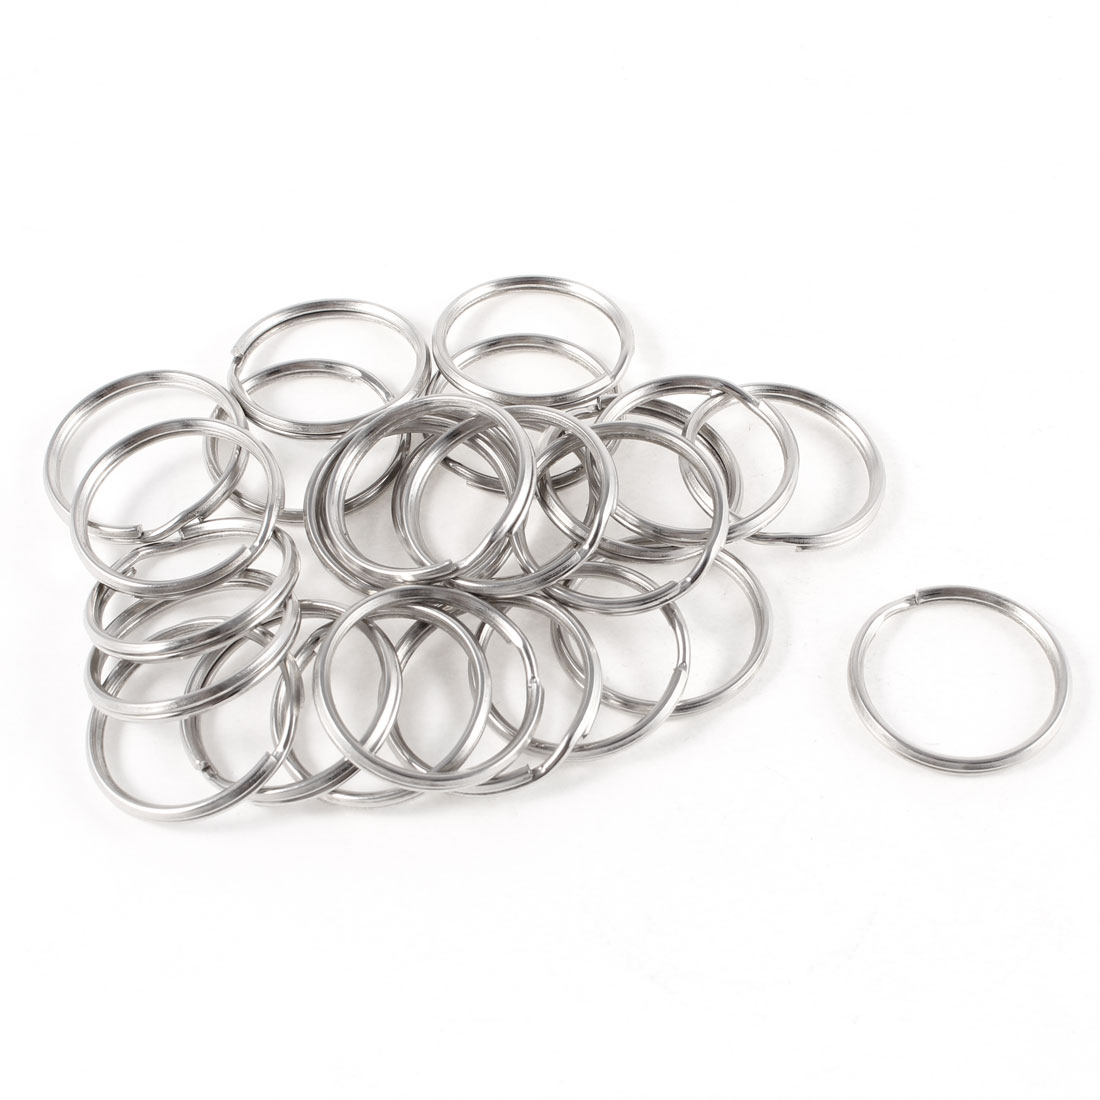 Glossy Metal Double Loop Split Ring Keyring Silver Tone 28mm Outside Dia 25pcs